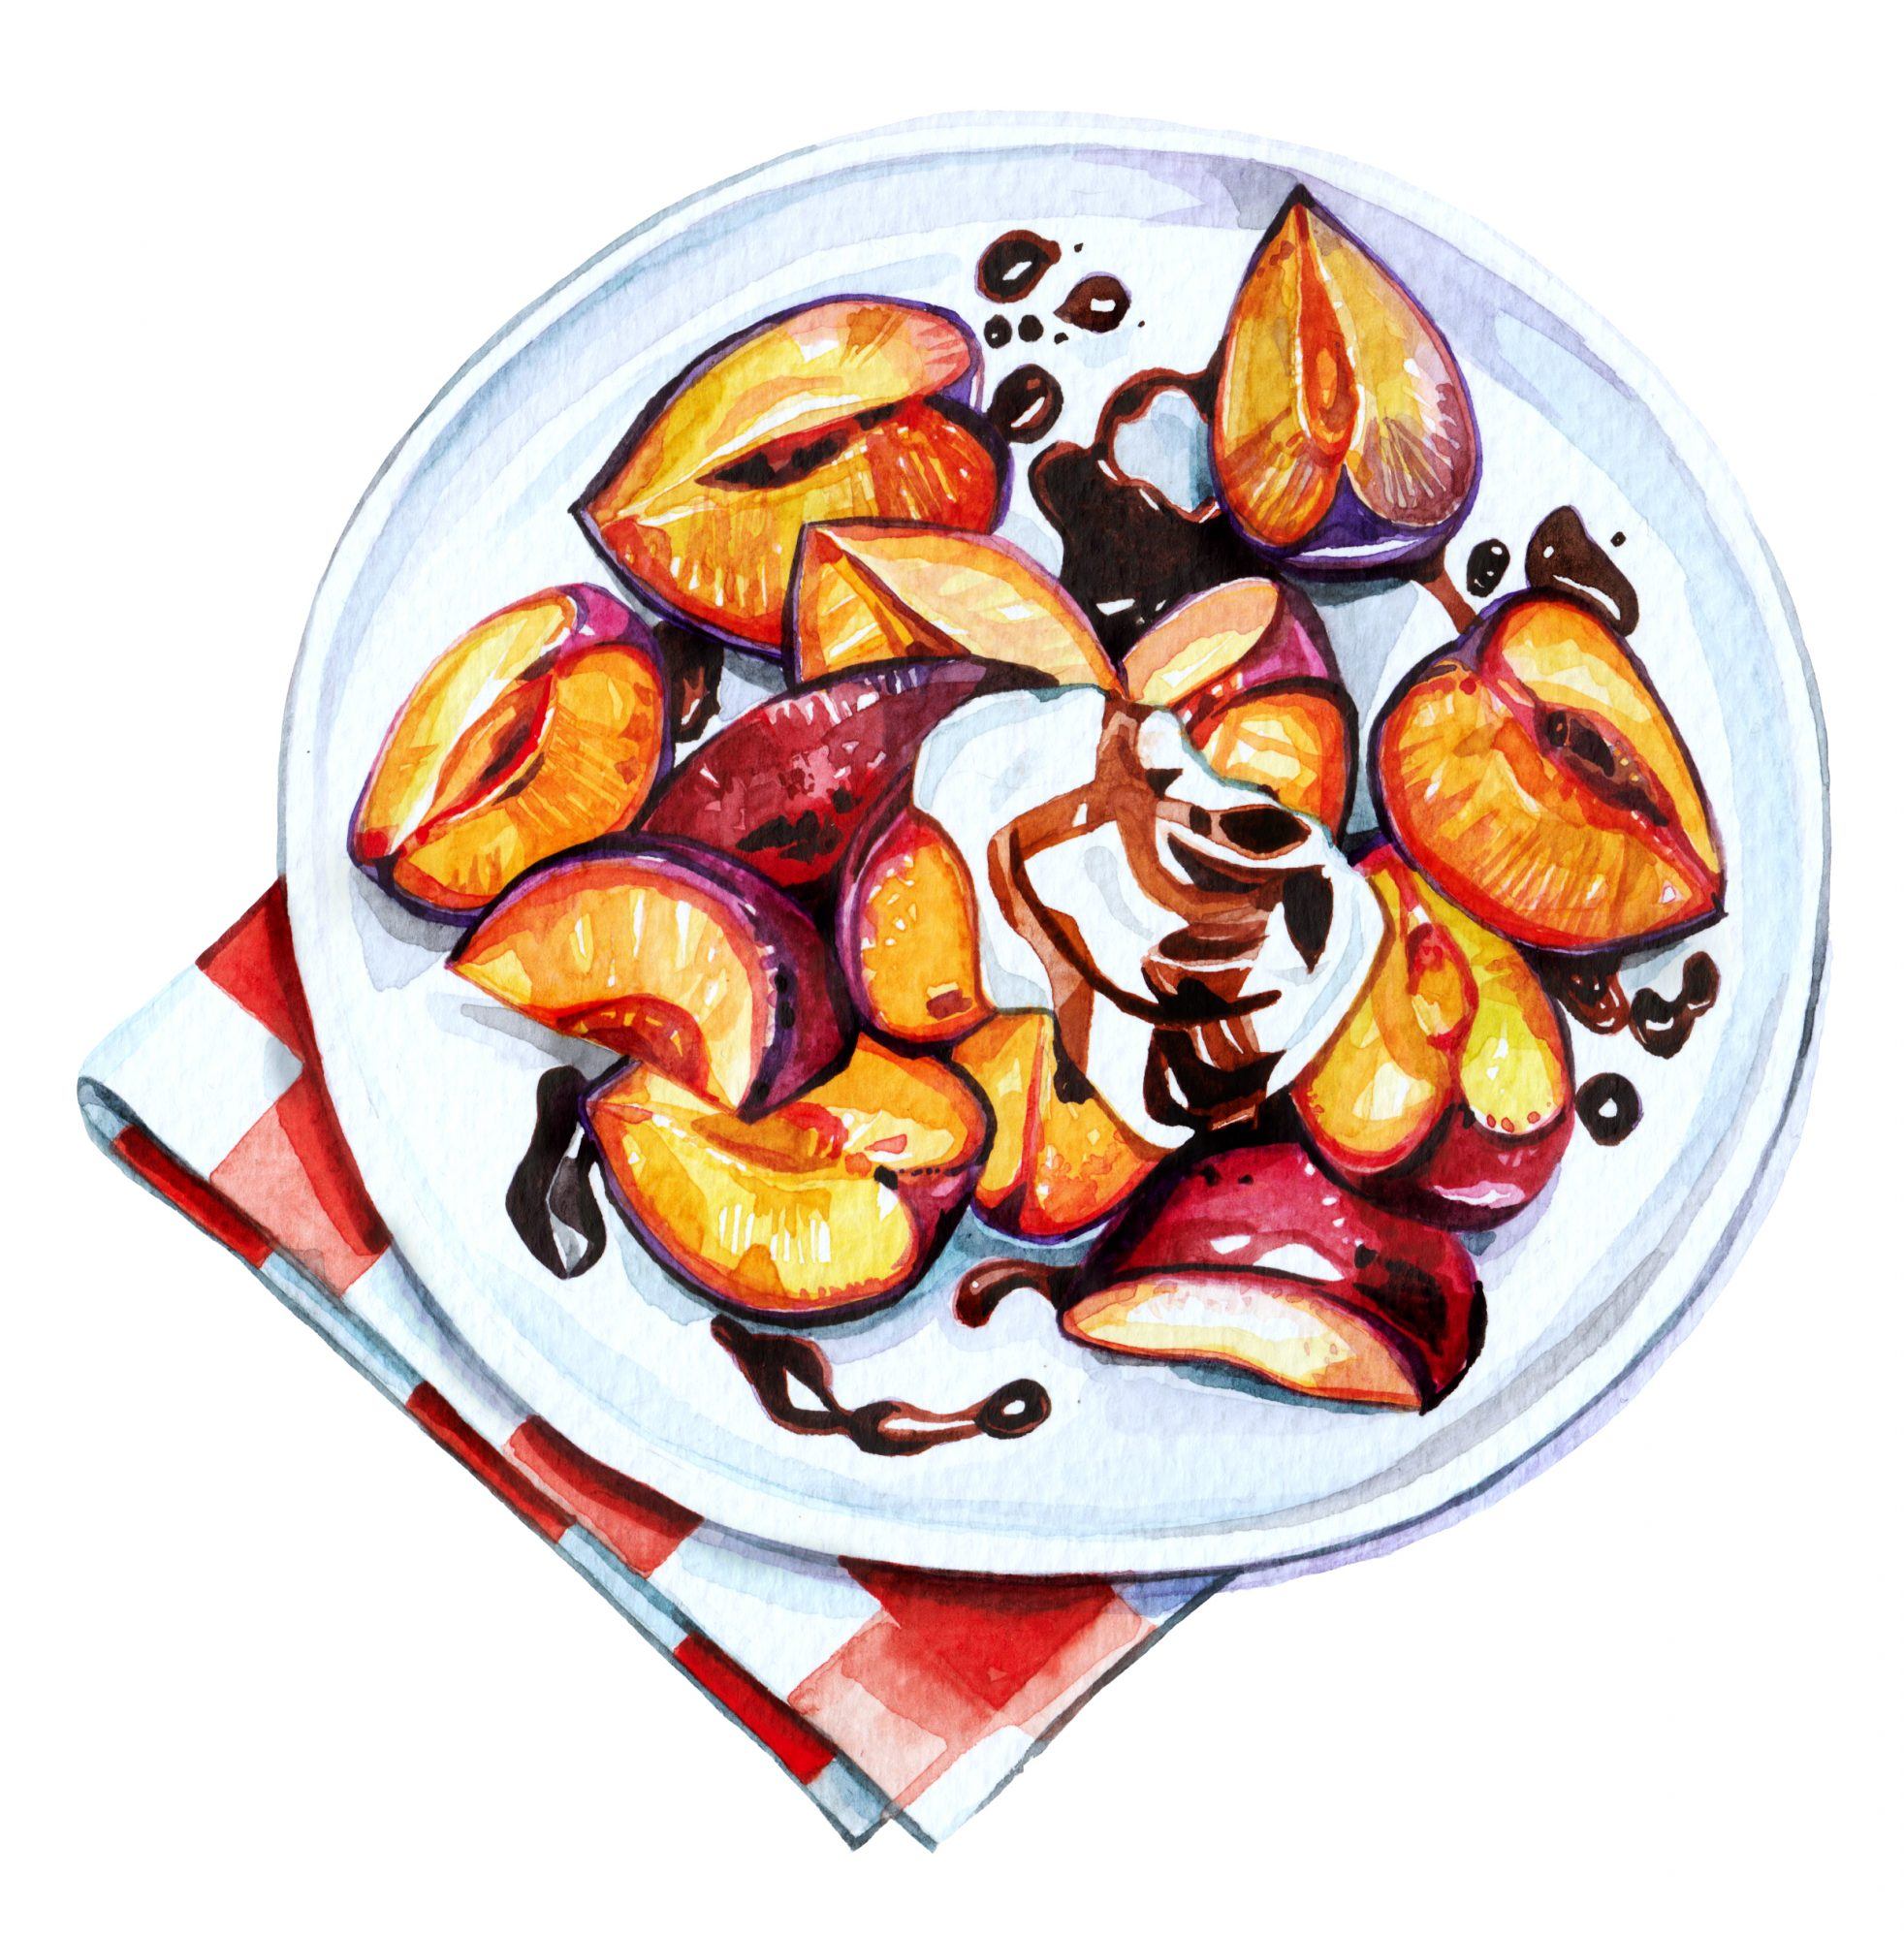 Balsamic Glazed and Roasted Plums